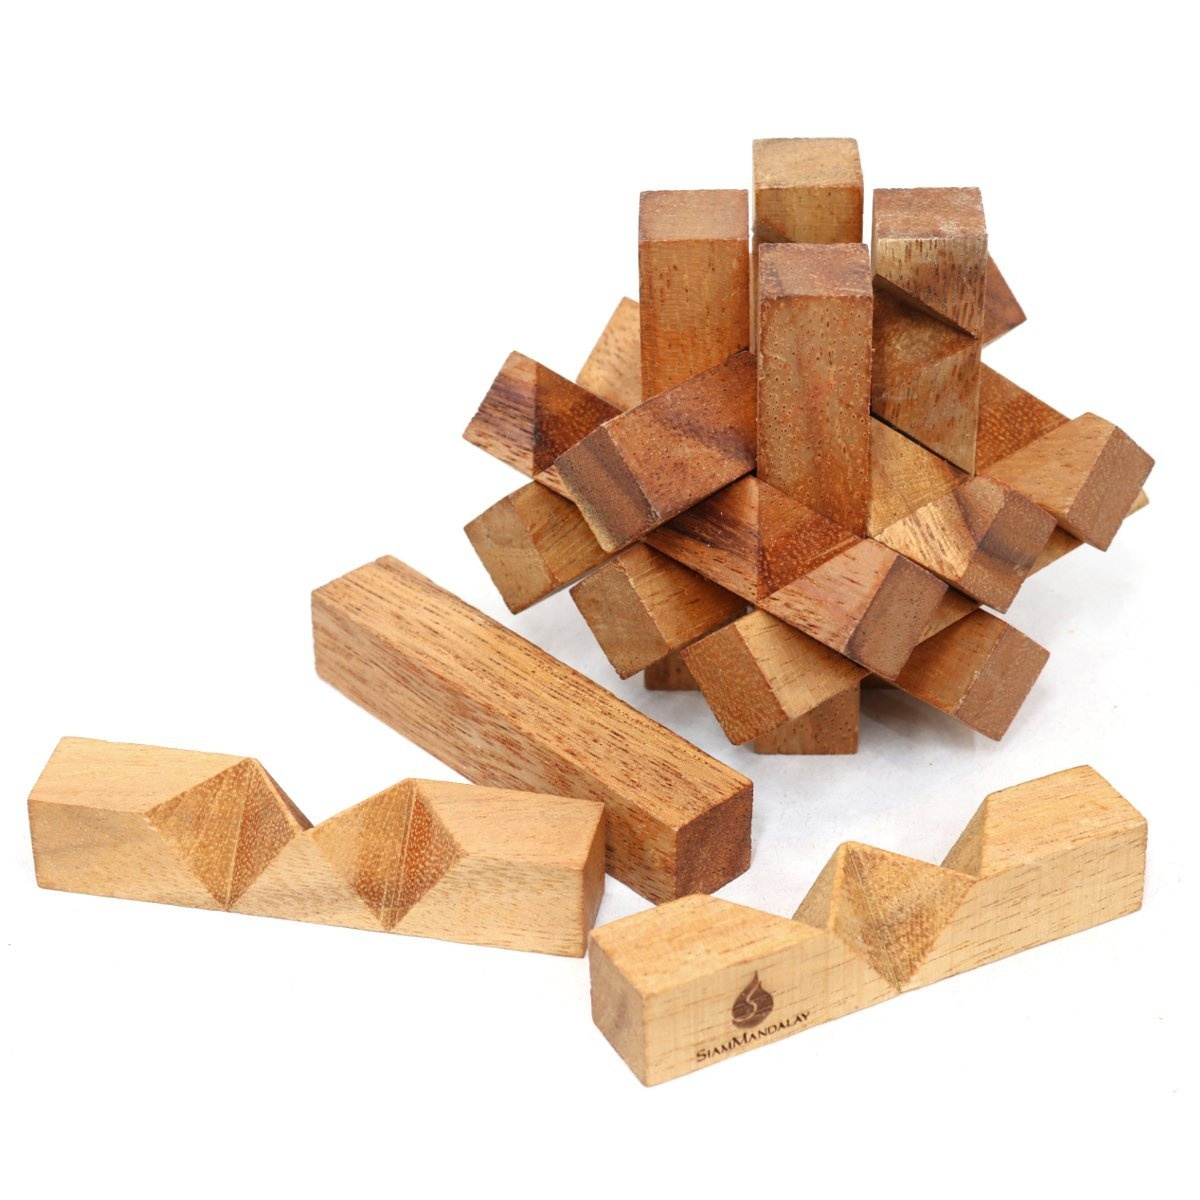 Lumberjack s Challenge: Handmade & Organic Wooden Burr Puzzle for Adults  from SiamMandalay with Free SM Gift Box Pictured | PrestoMall - Board Games